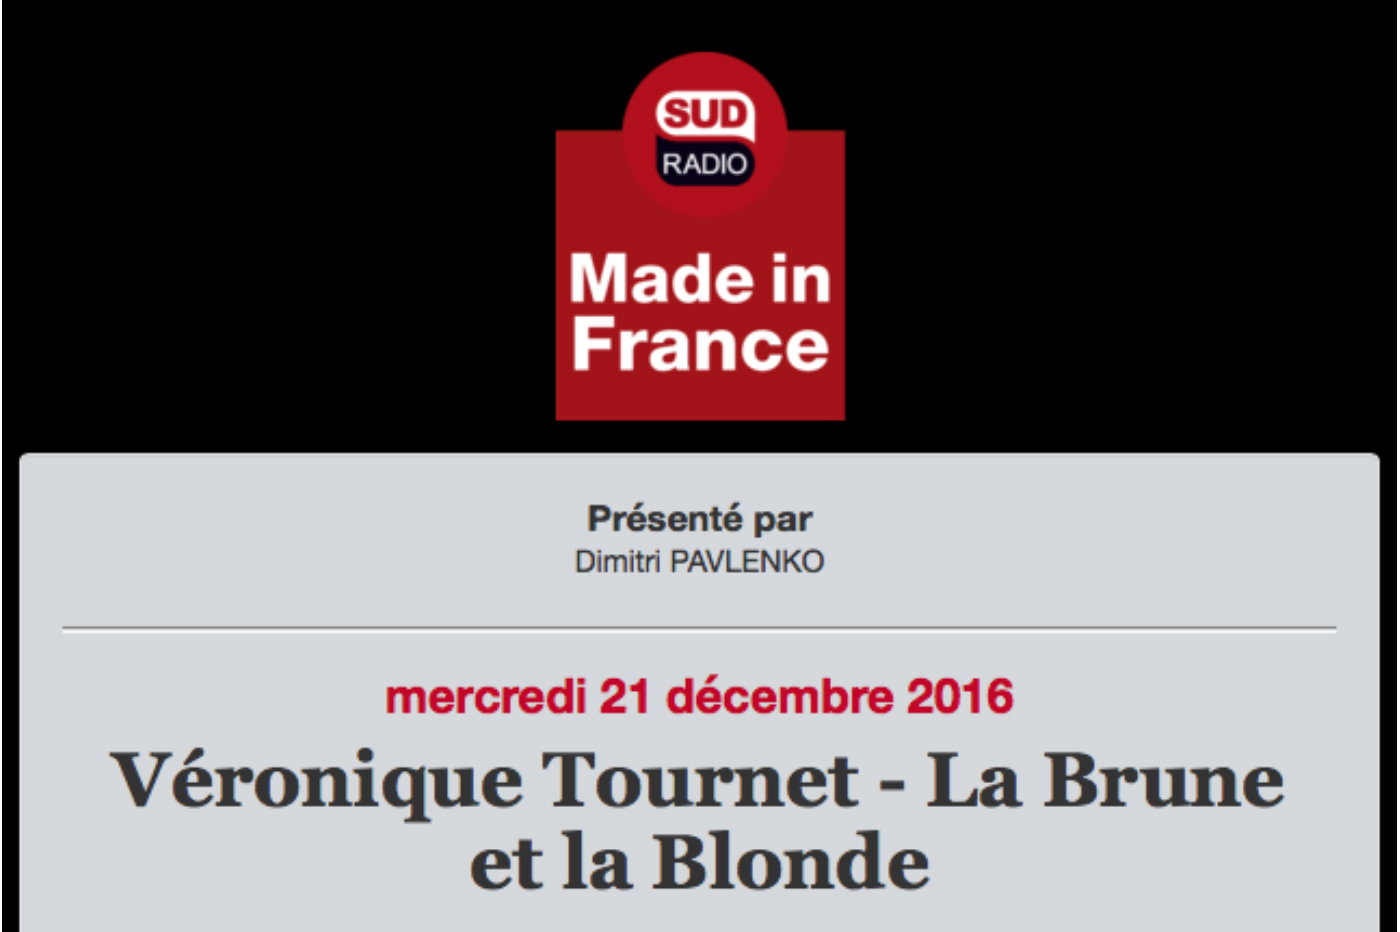 MADE IN FRANCE INTERVIEW VERONIQUE TOURNET –  SUD RADIO